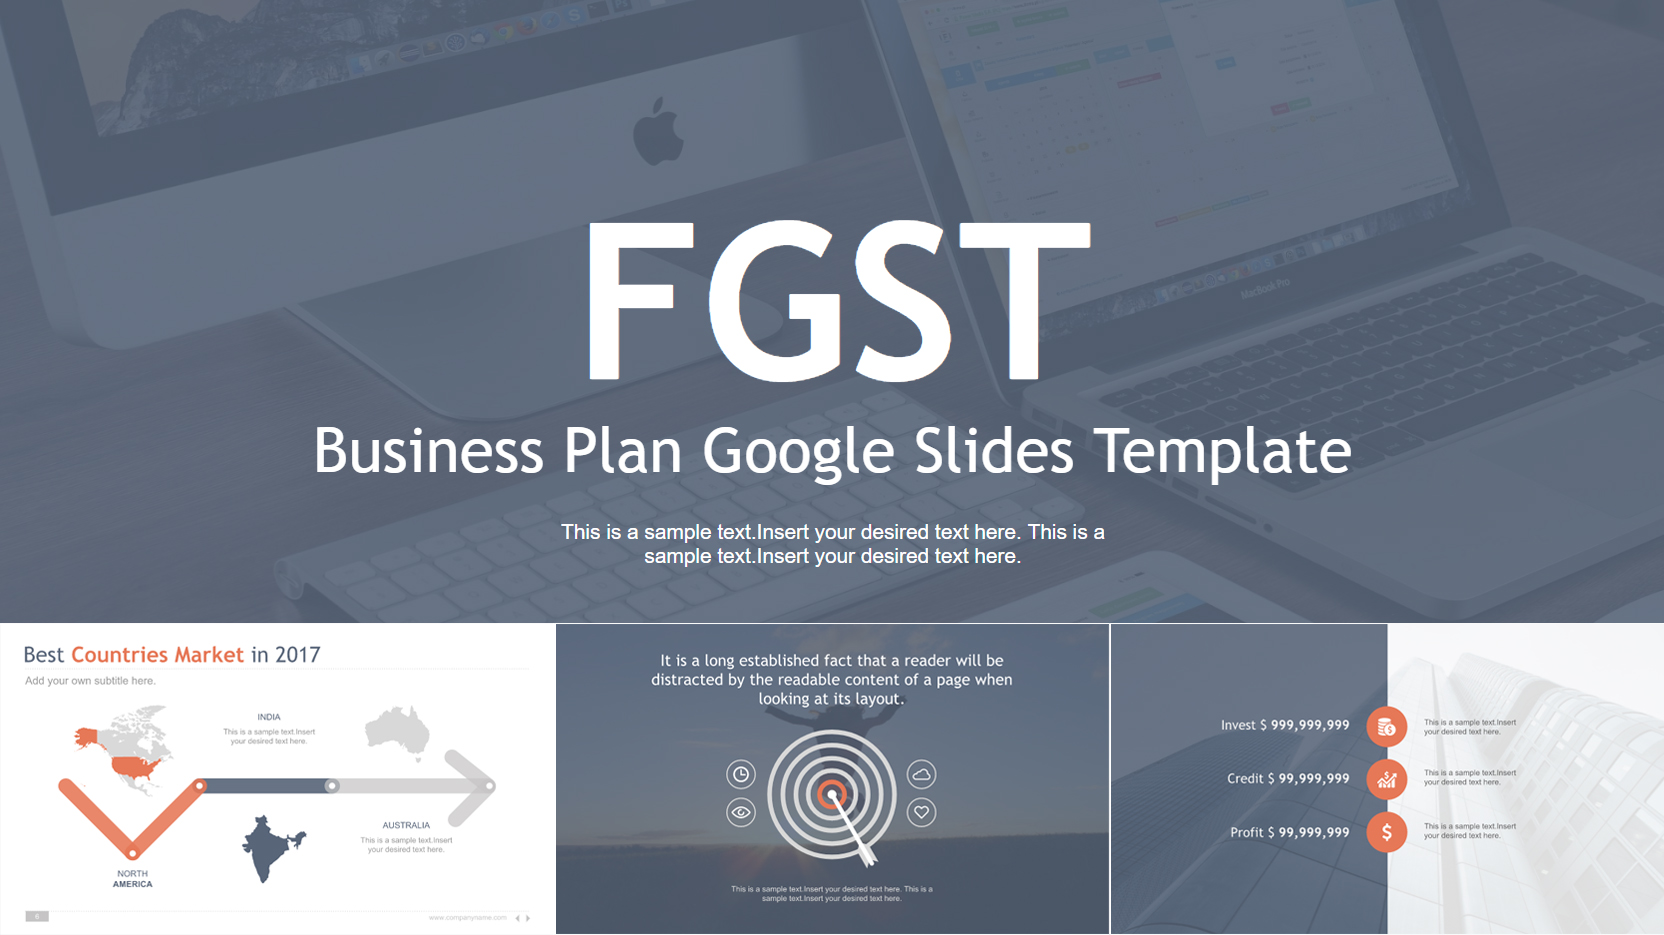 Free Google Slides Templates For Your Next Presentation - Best google slides themes